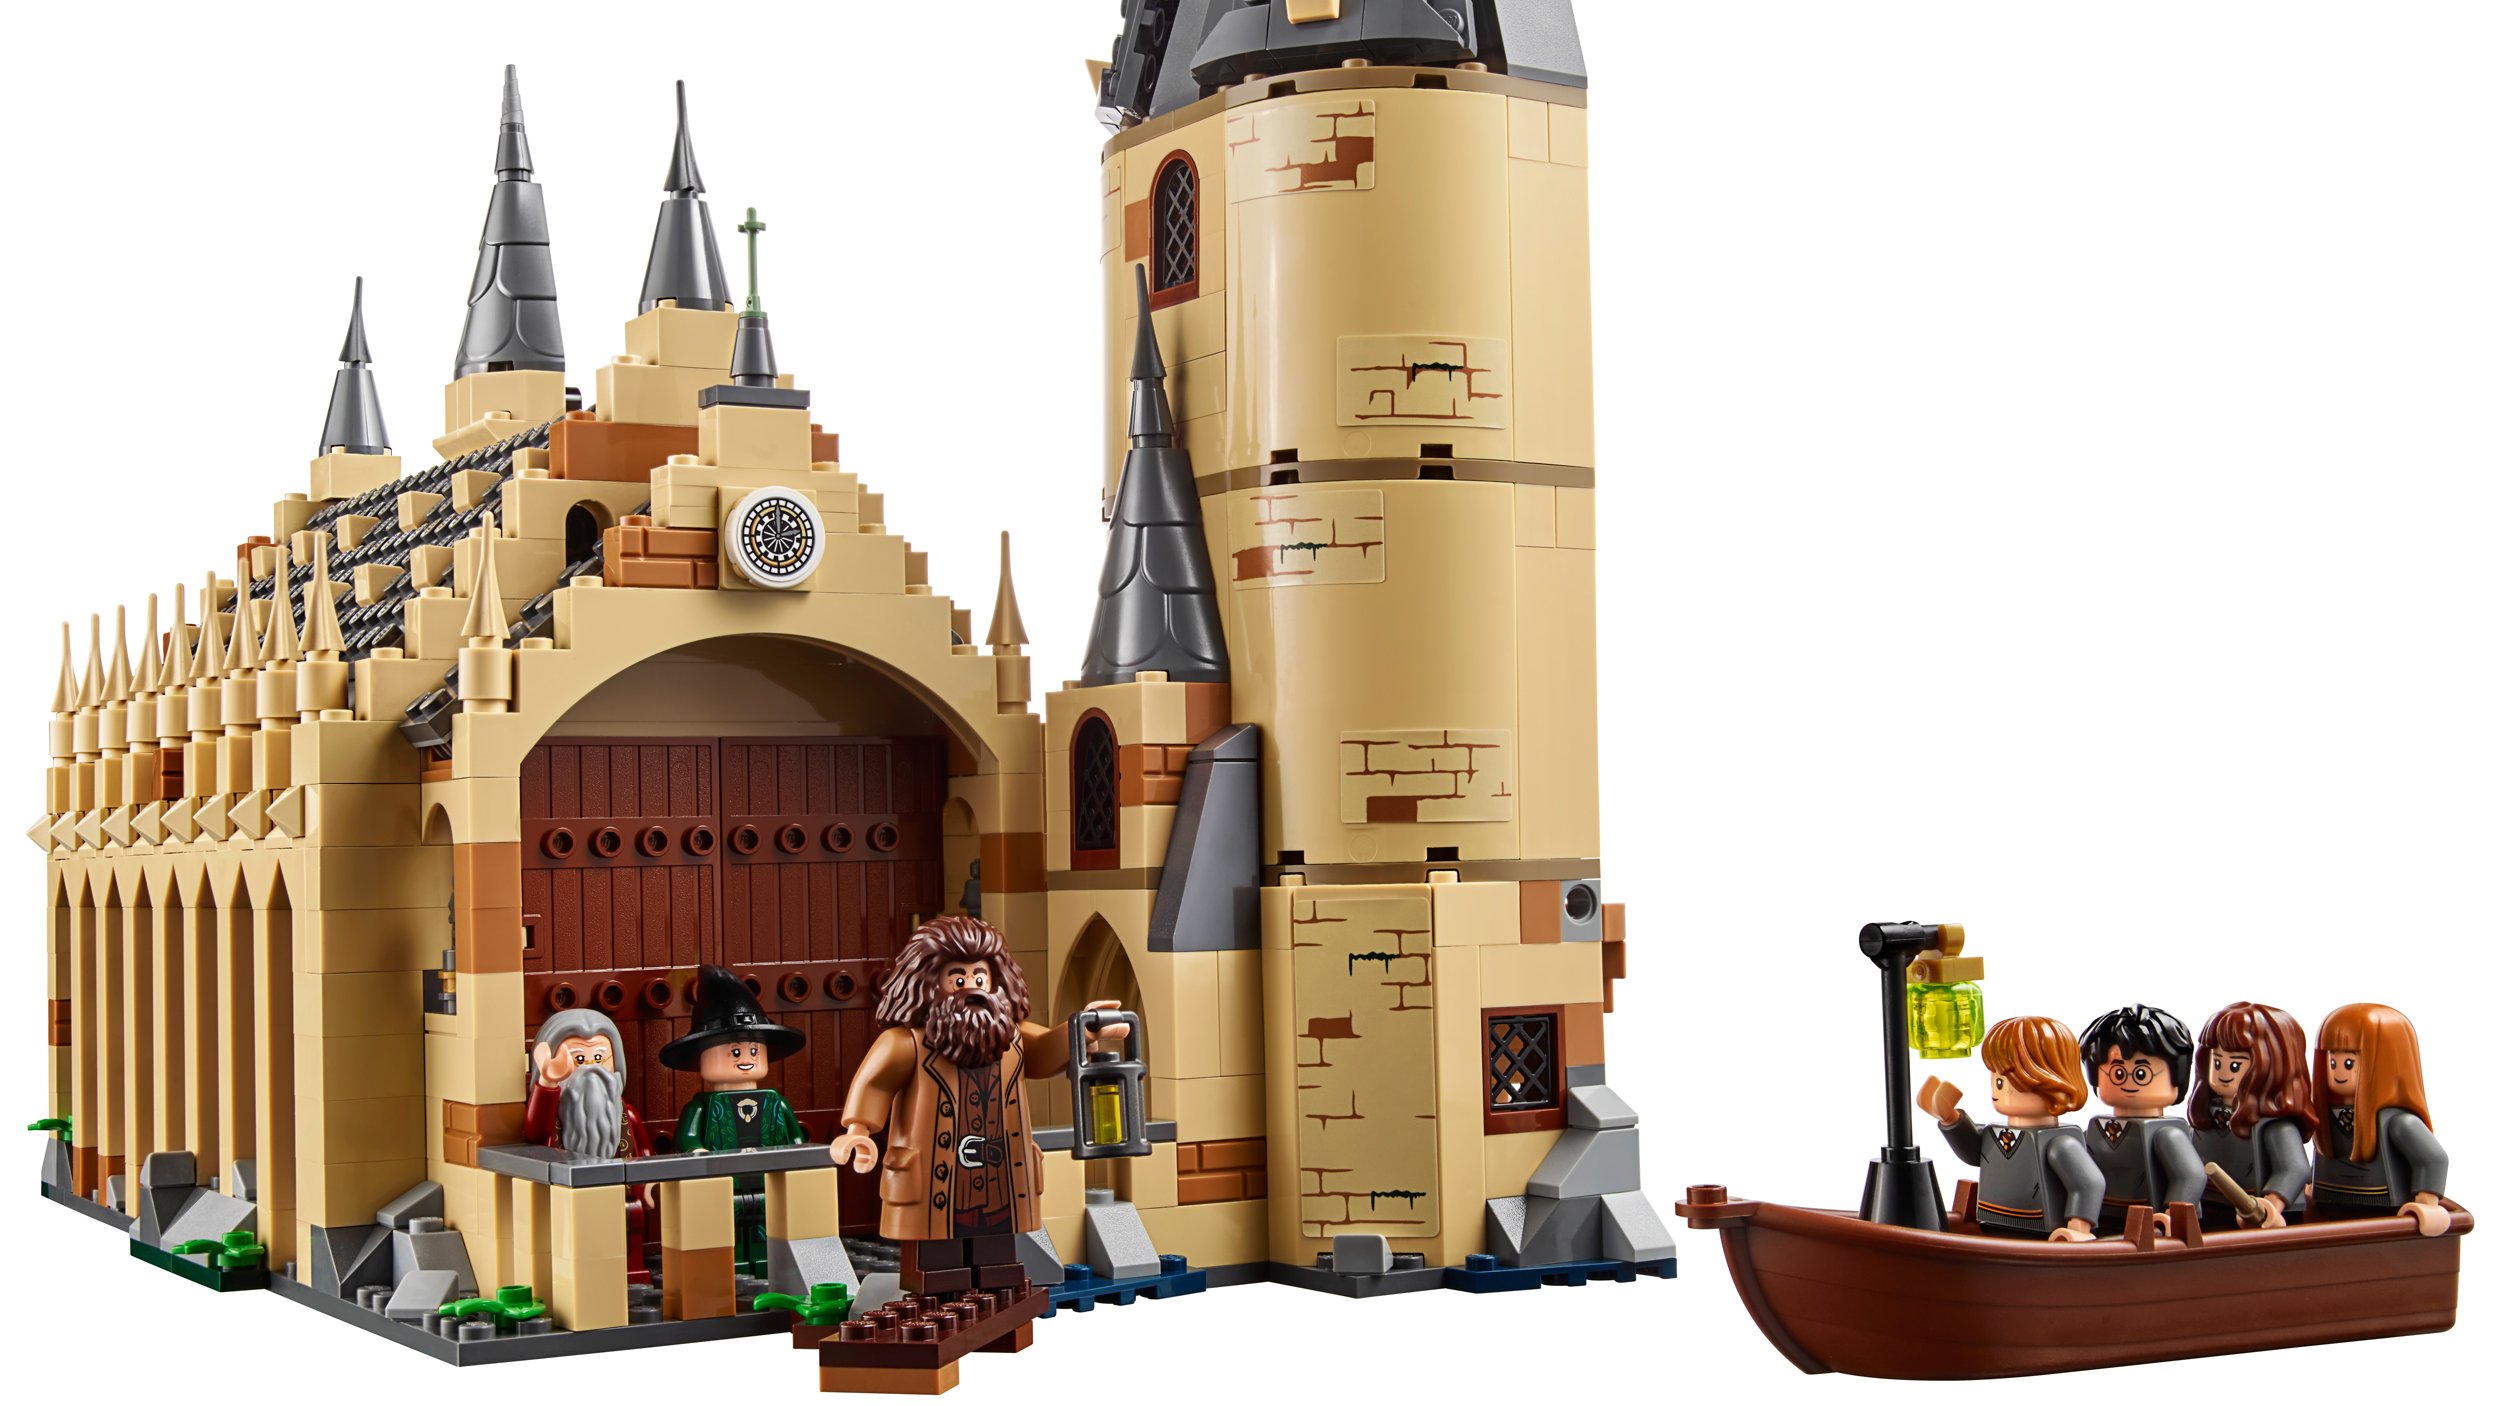 Lego rende omaggio ad Harry Potter con il set di Hogwarts | Collater.al 1